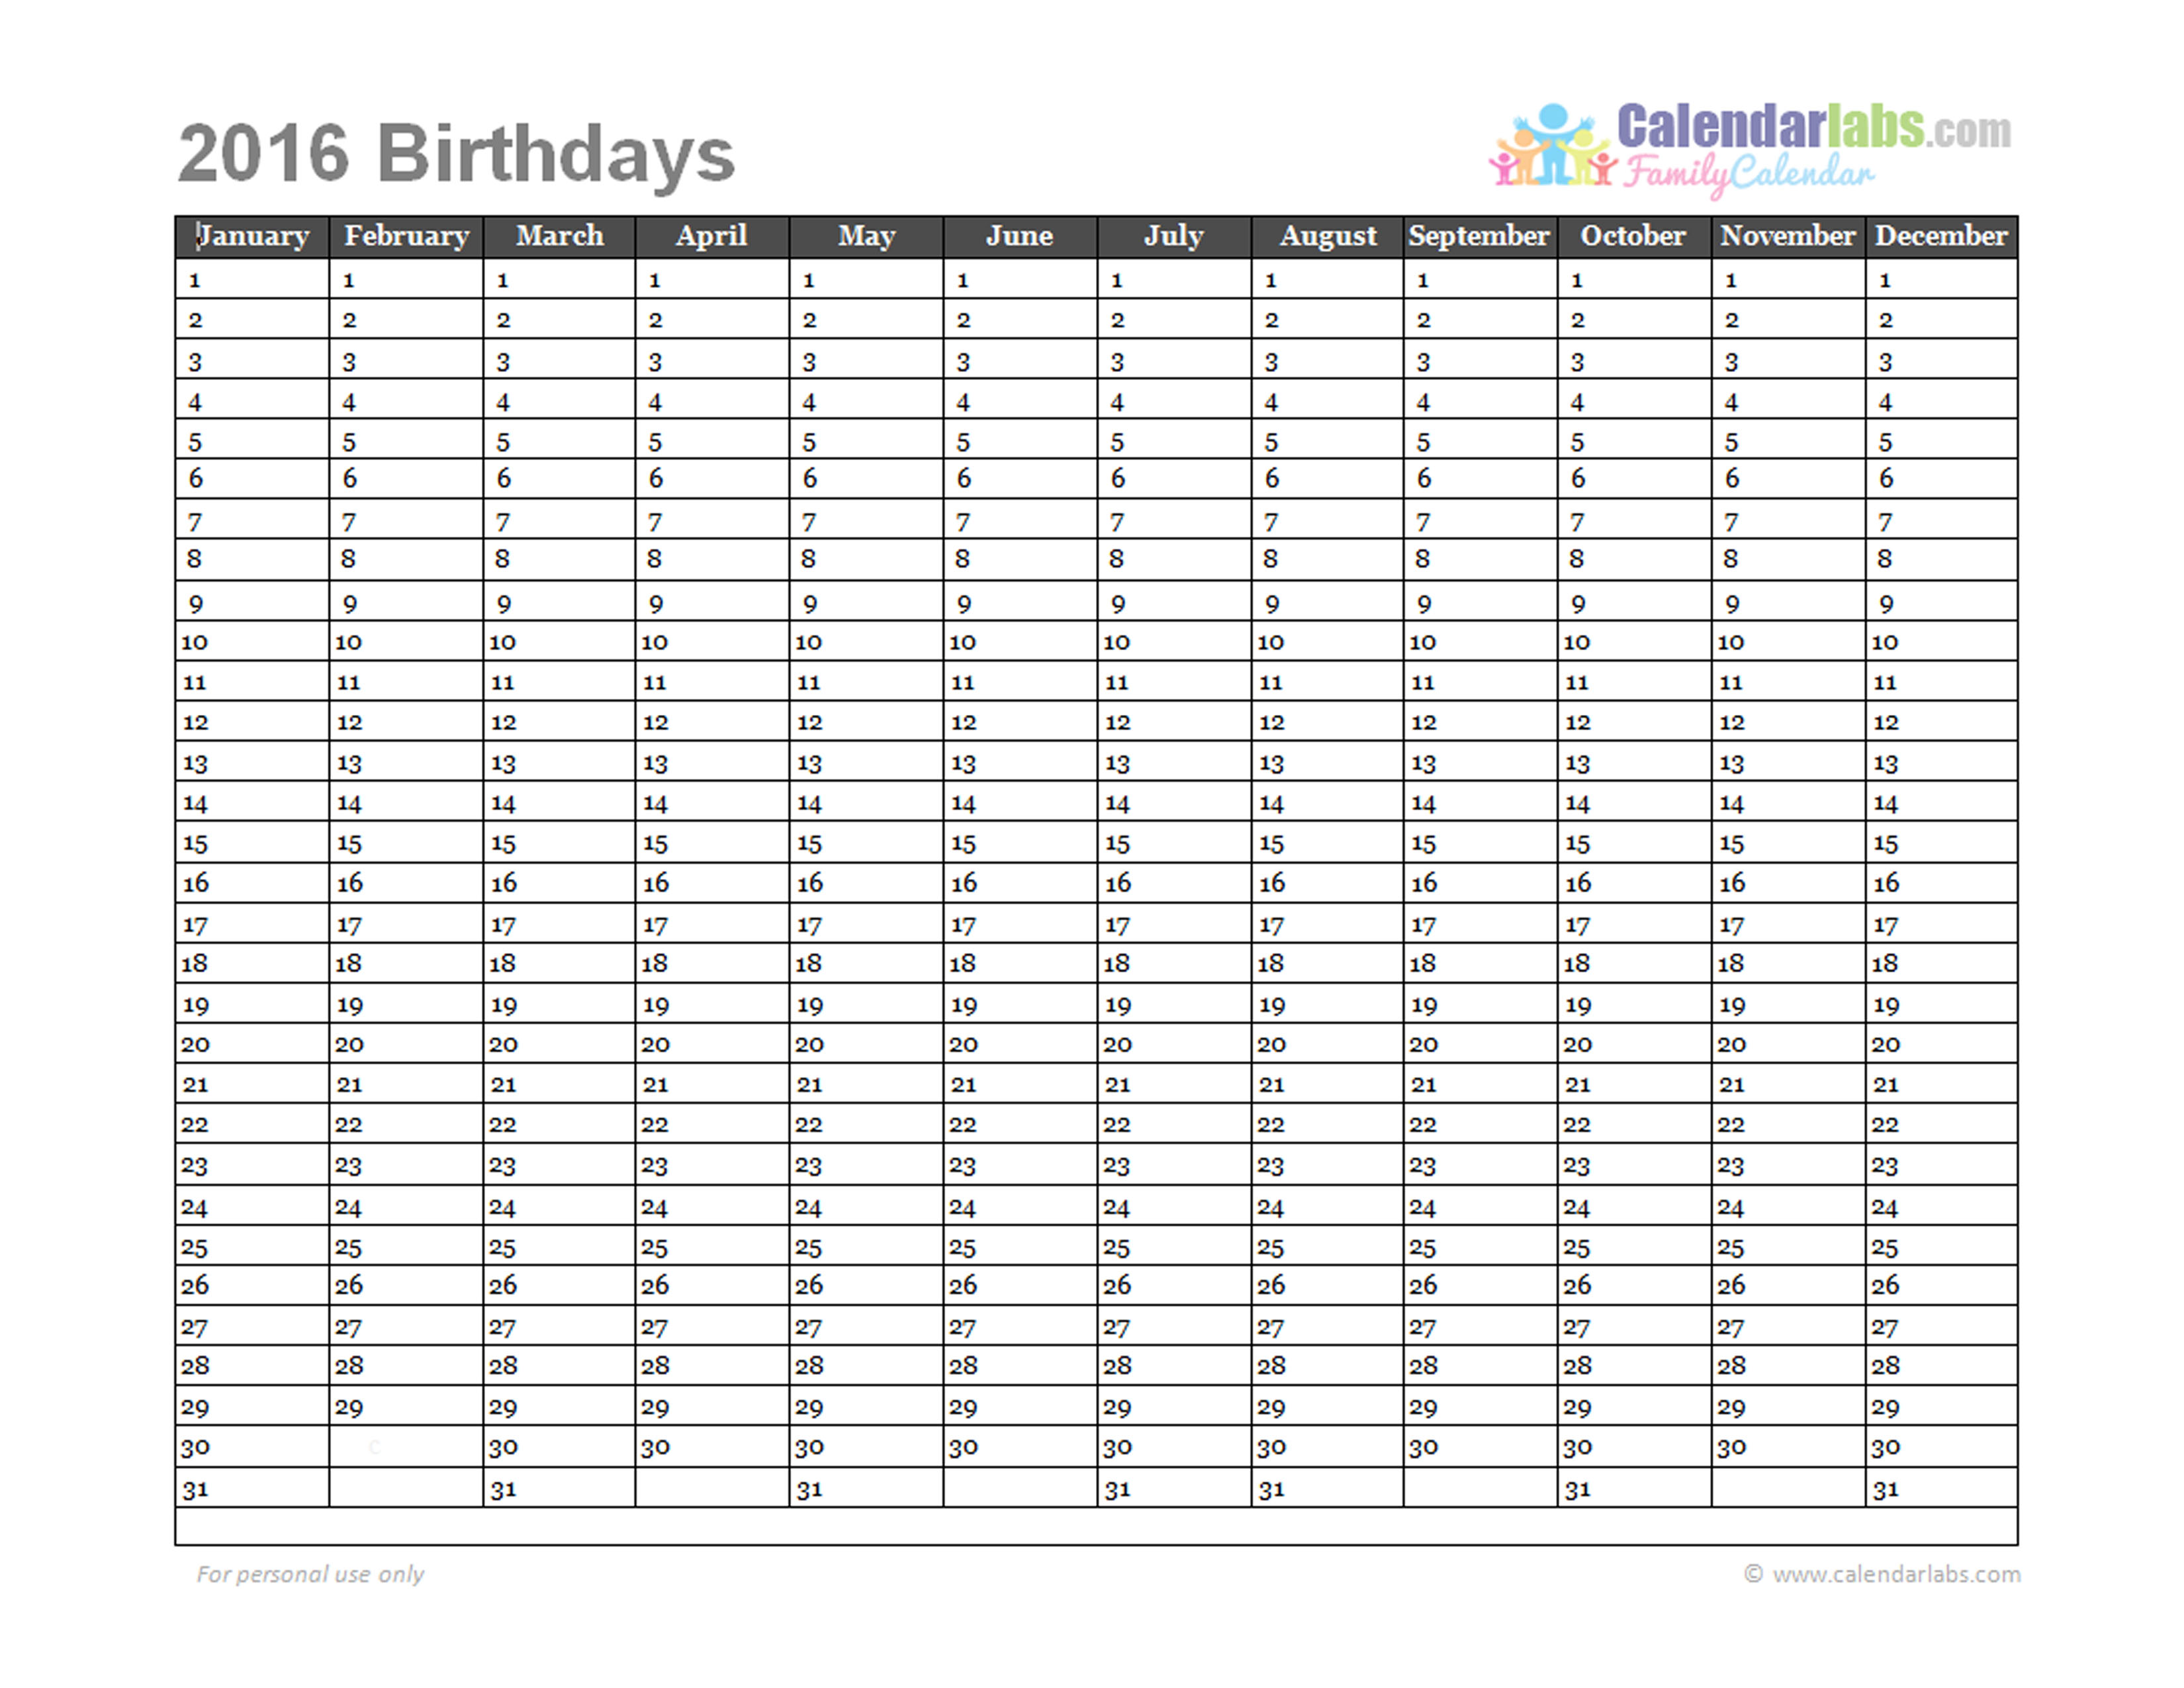 2016 birthday calendar template